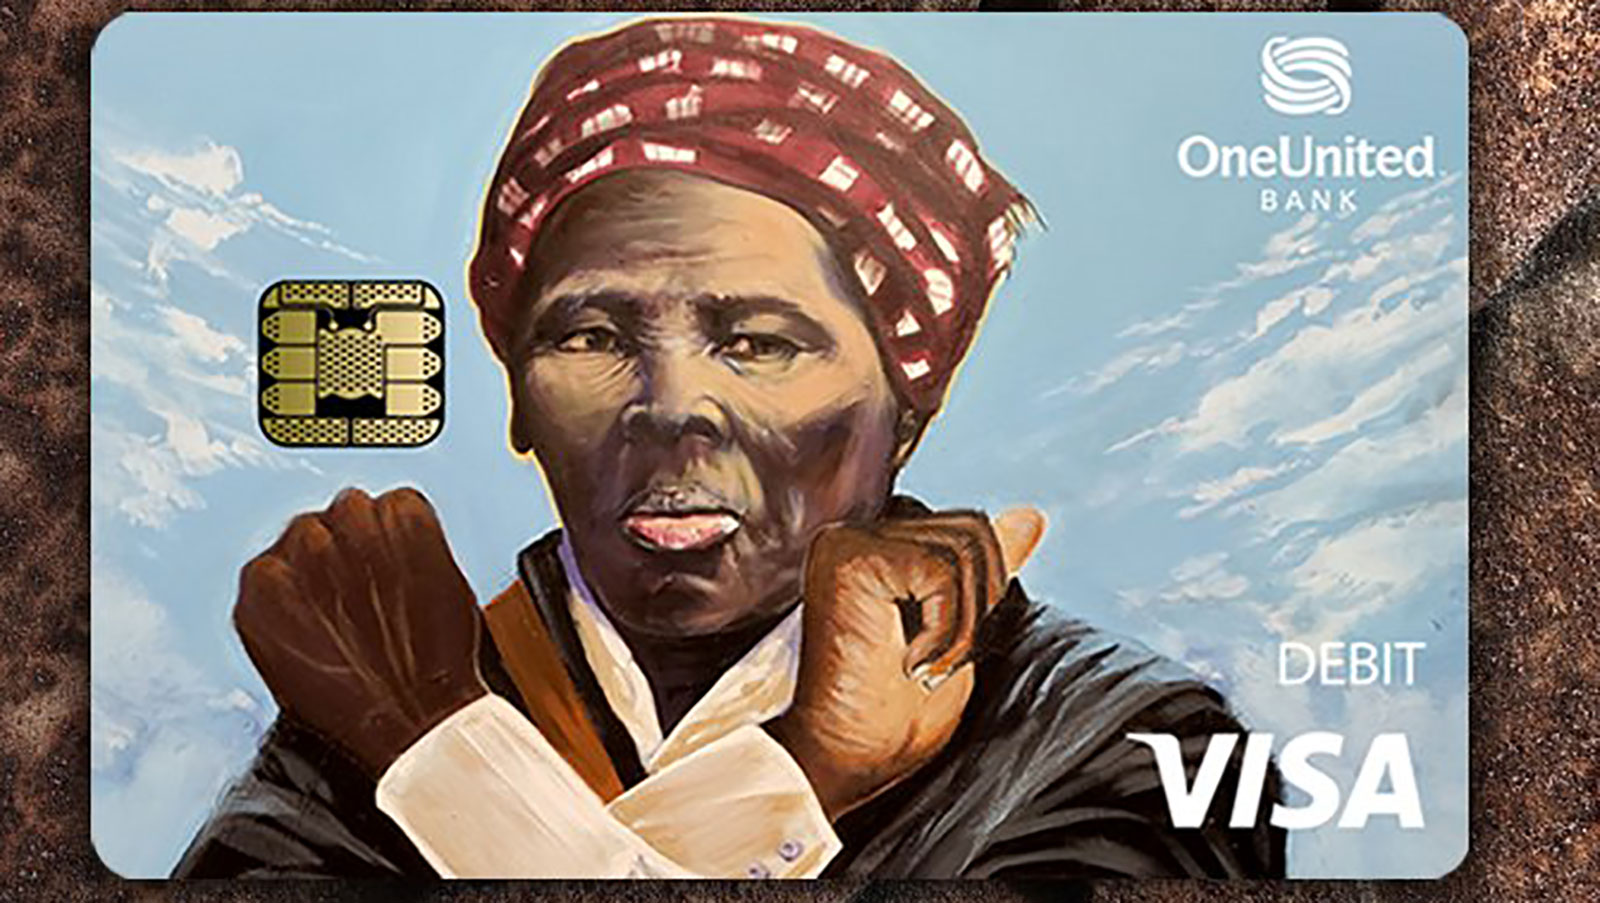 It looks like Harriet Tubman is throwing up the 'Wakanda Forever' sign on this new debit card. The bank says she's not